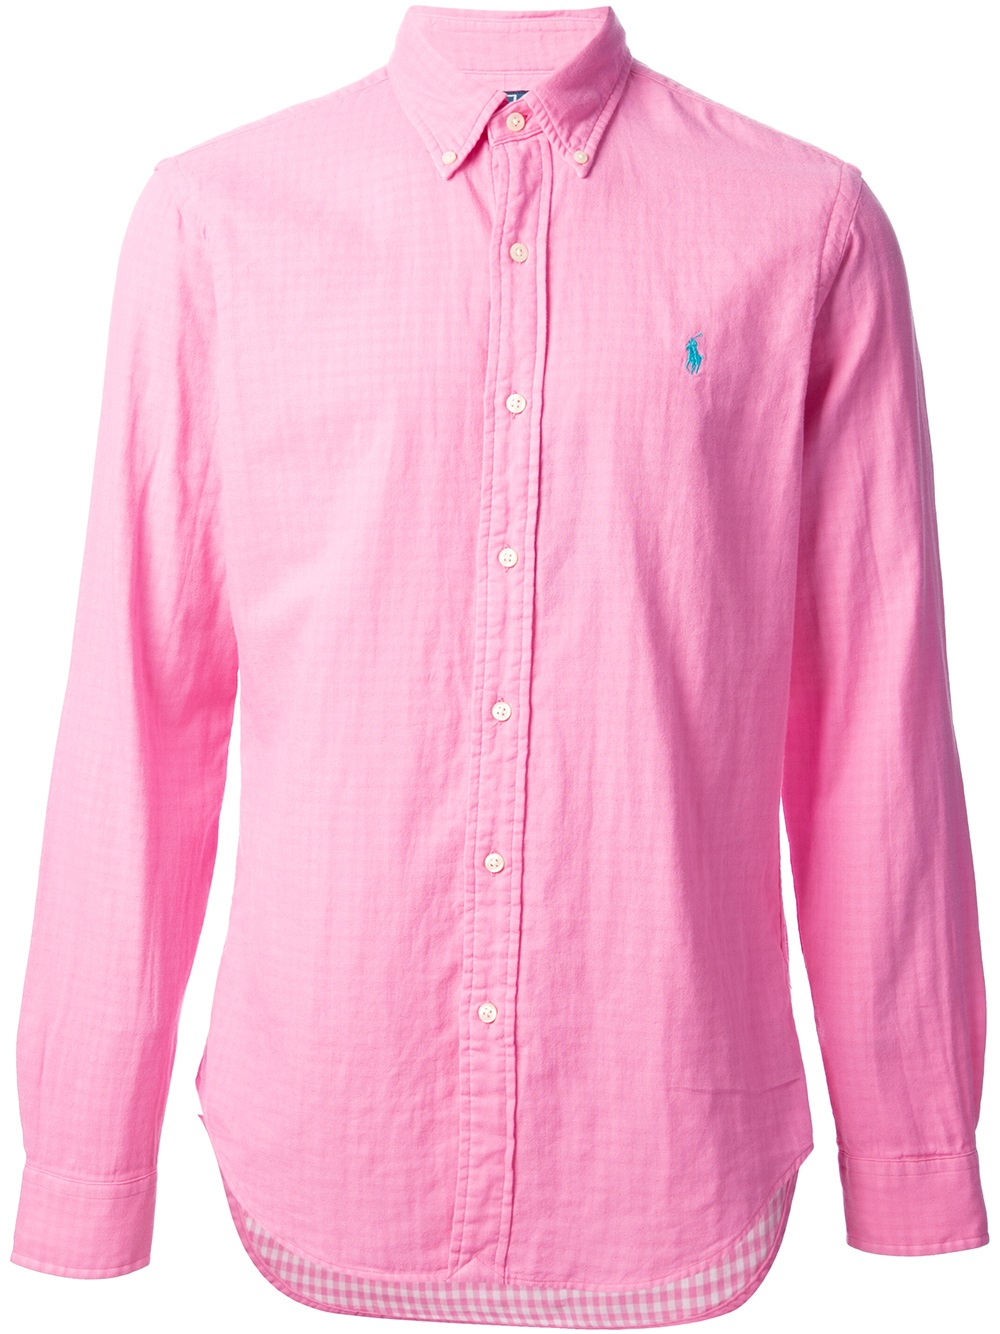 Free shipping and returns on Men's Pink Button-Down Collar Dress Shirts at coolmfilehj.cf